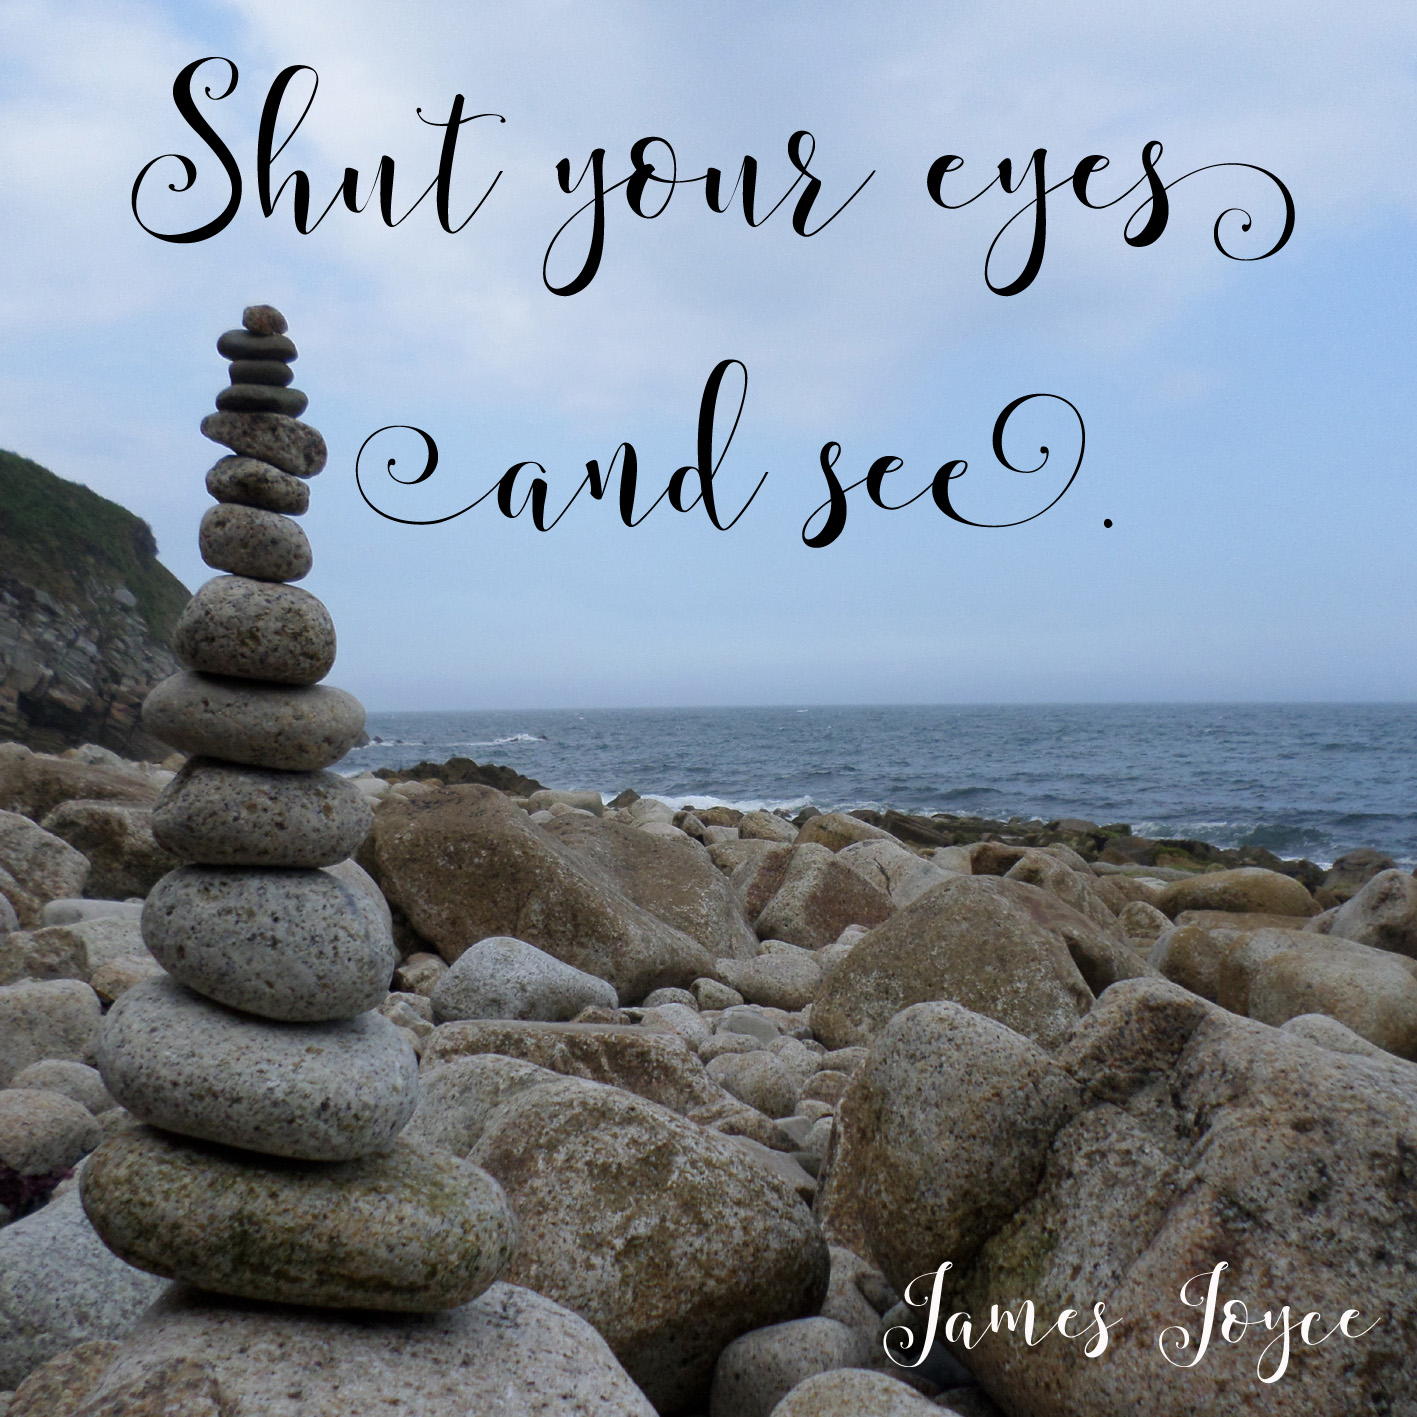 shut your eyes and see james joyce quote